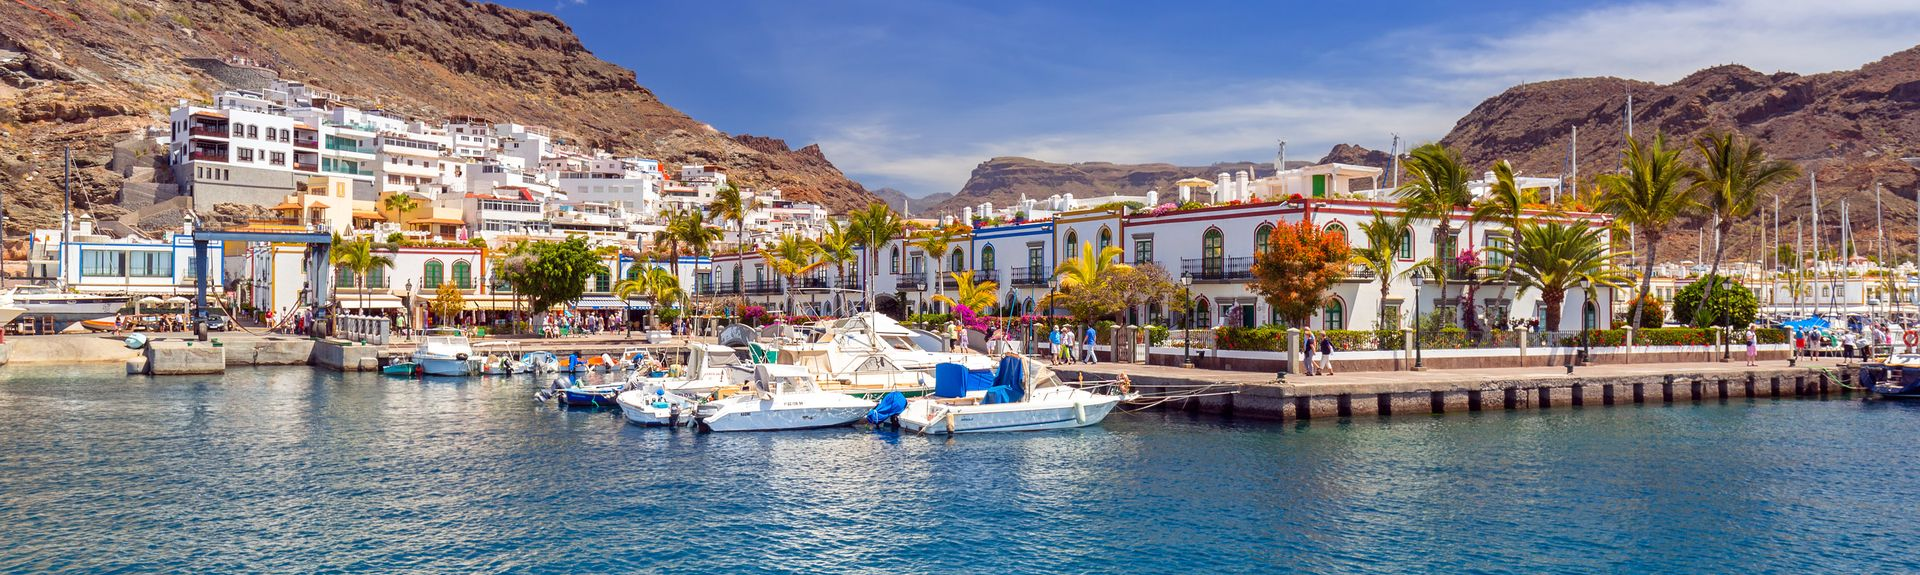 Puerto de Mogan, Mogan, Canary Islands, Spain